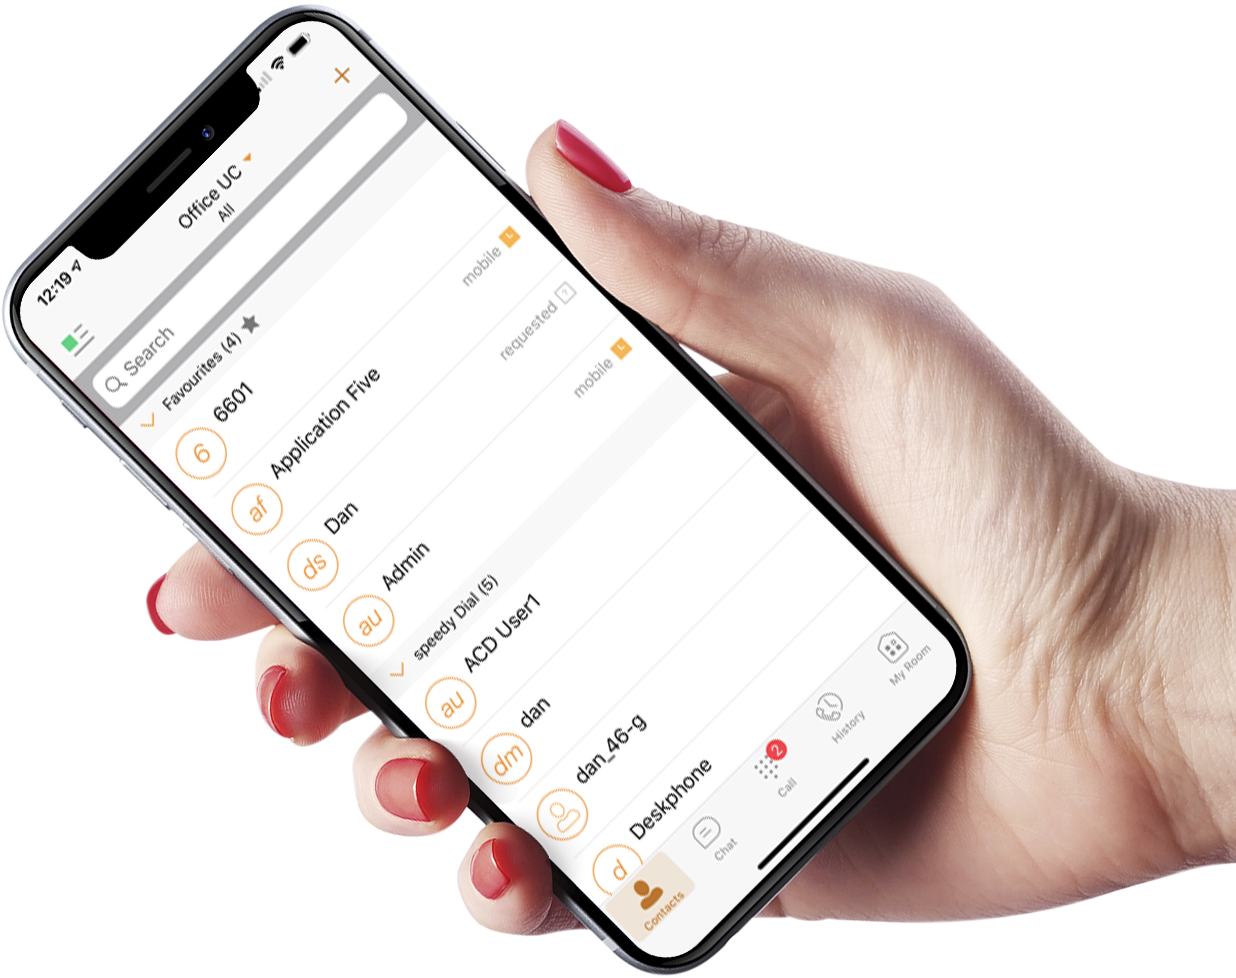 VoIP phone system mobile app